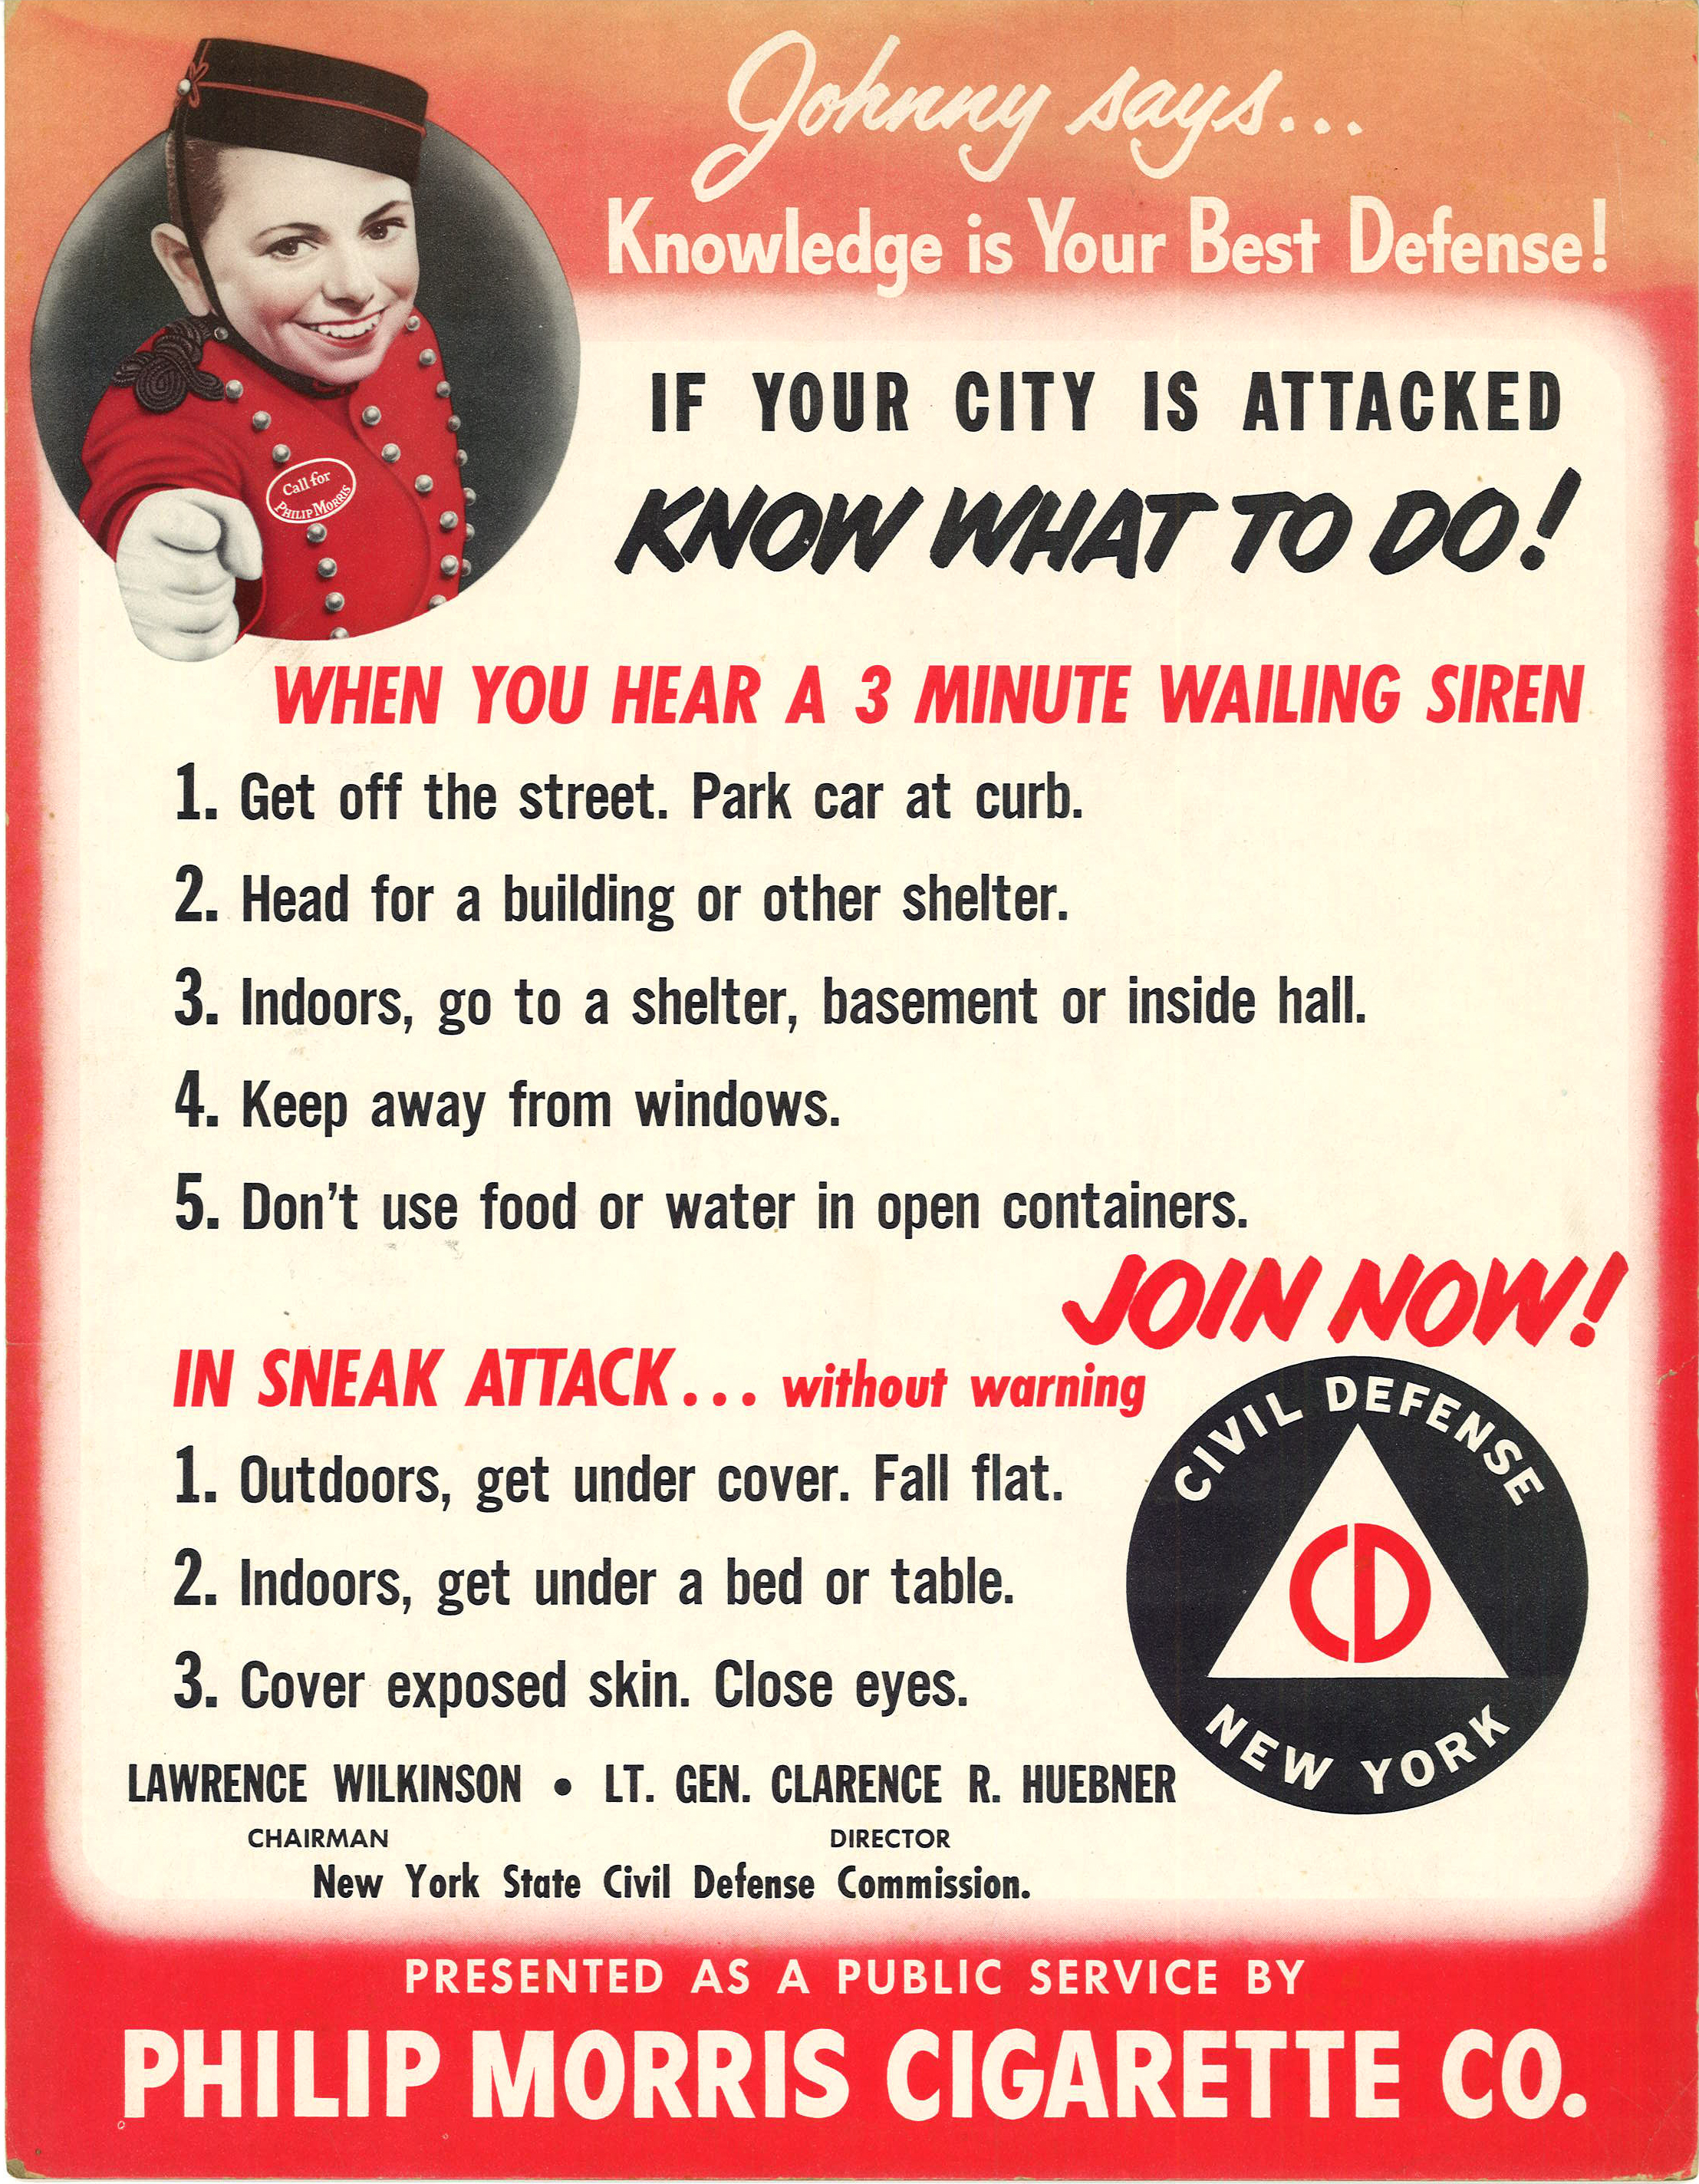 1951 NY Civil Defense Commission Poster